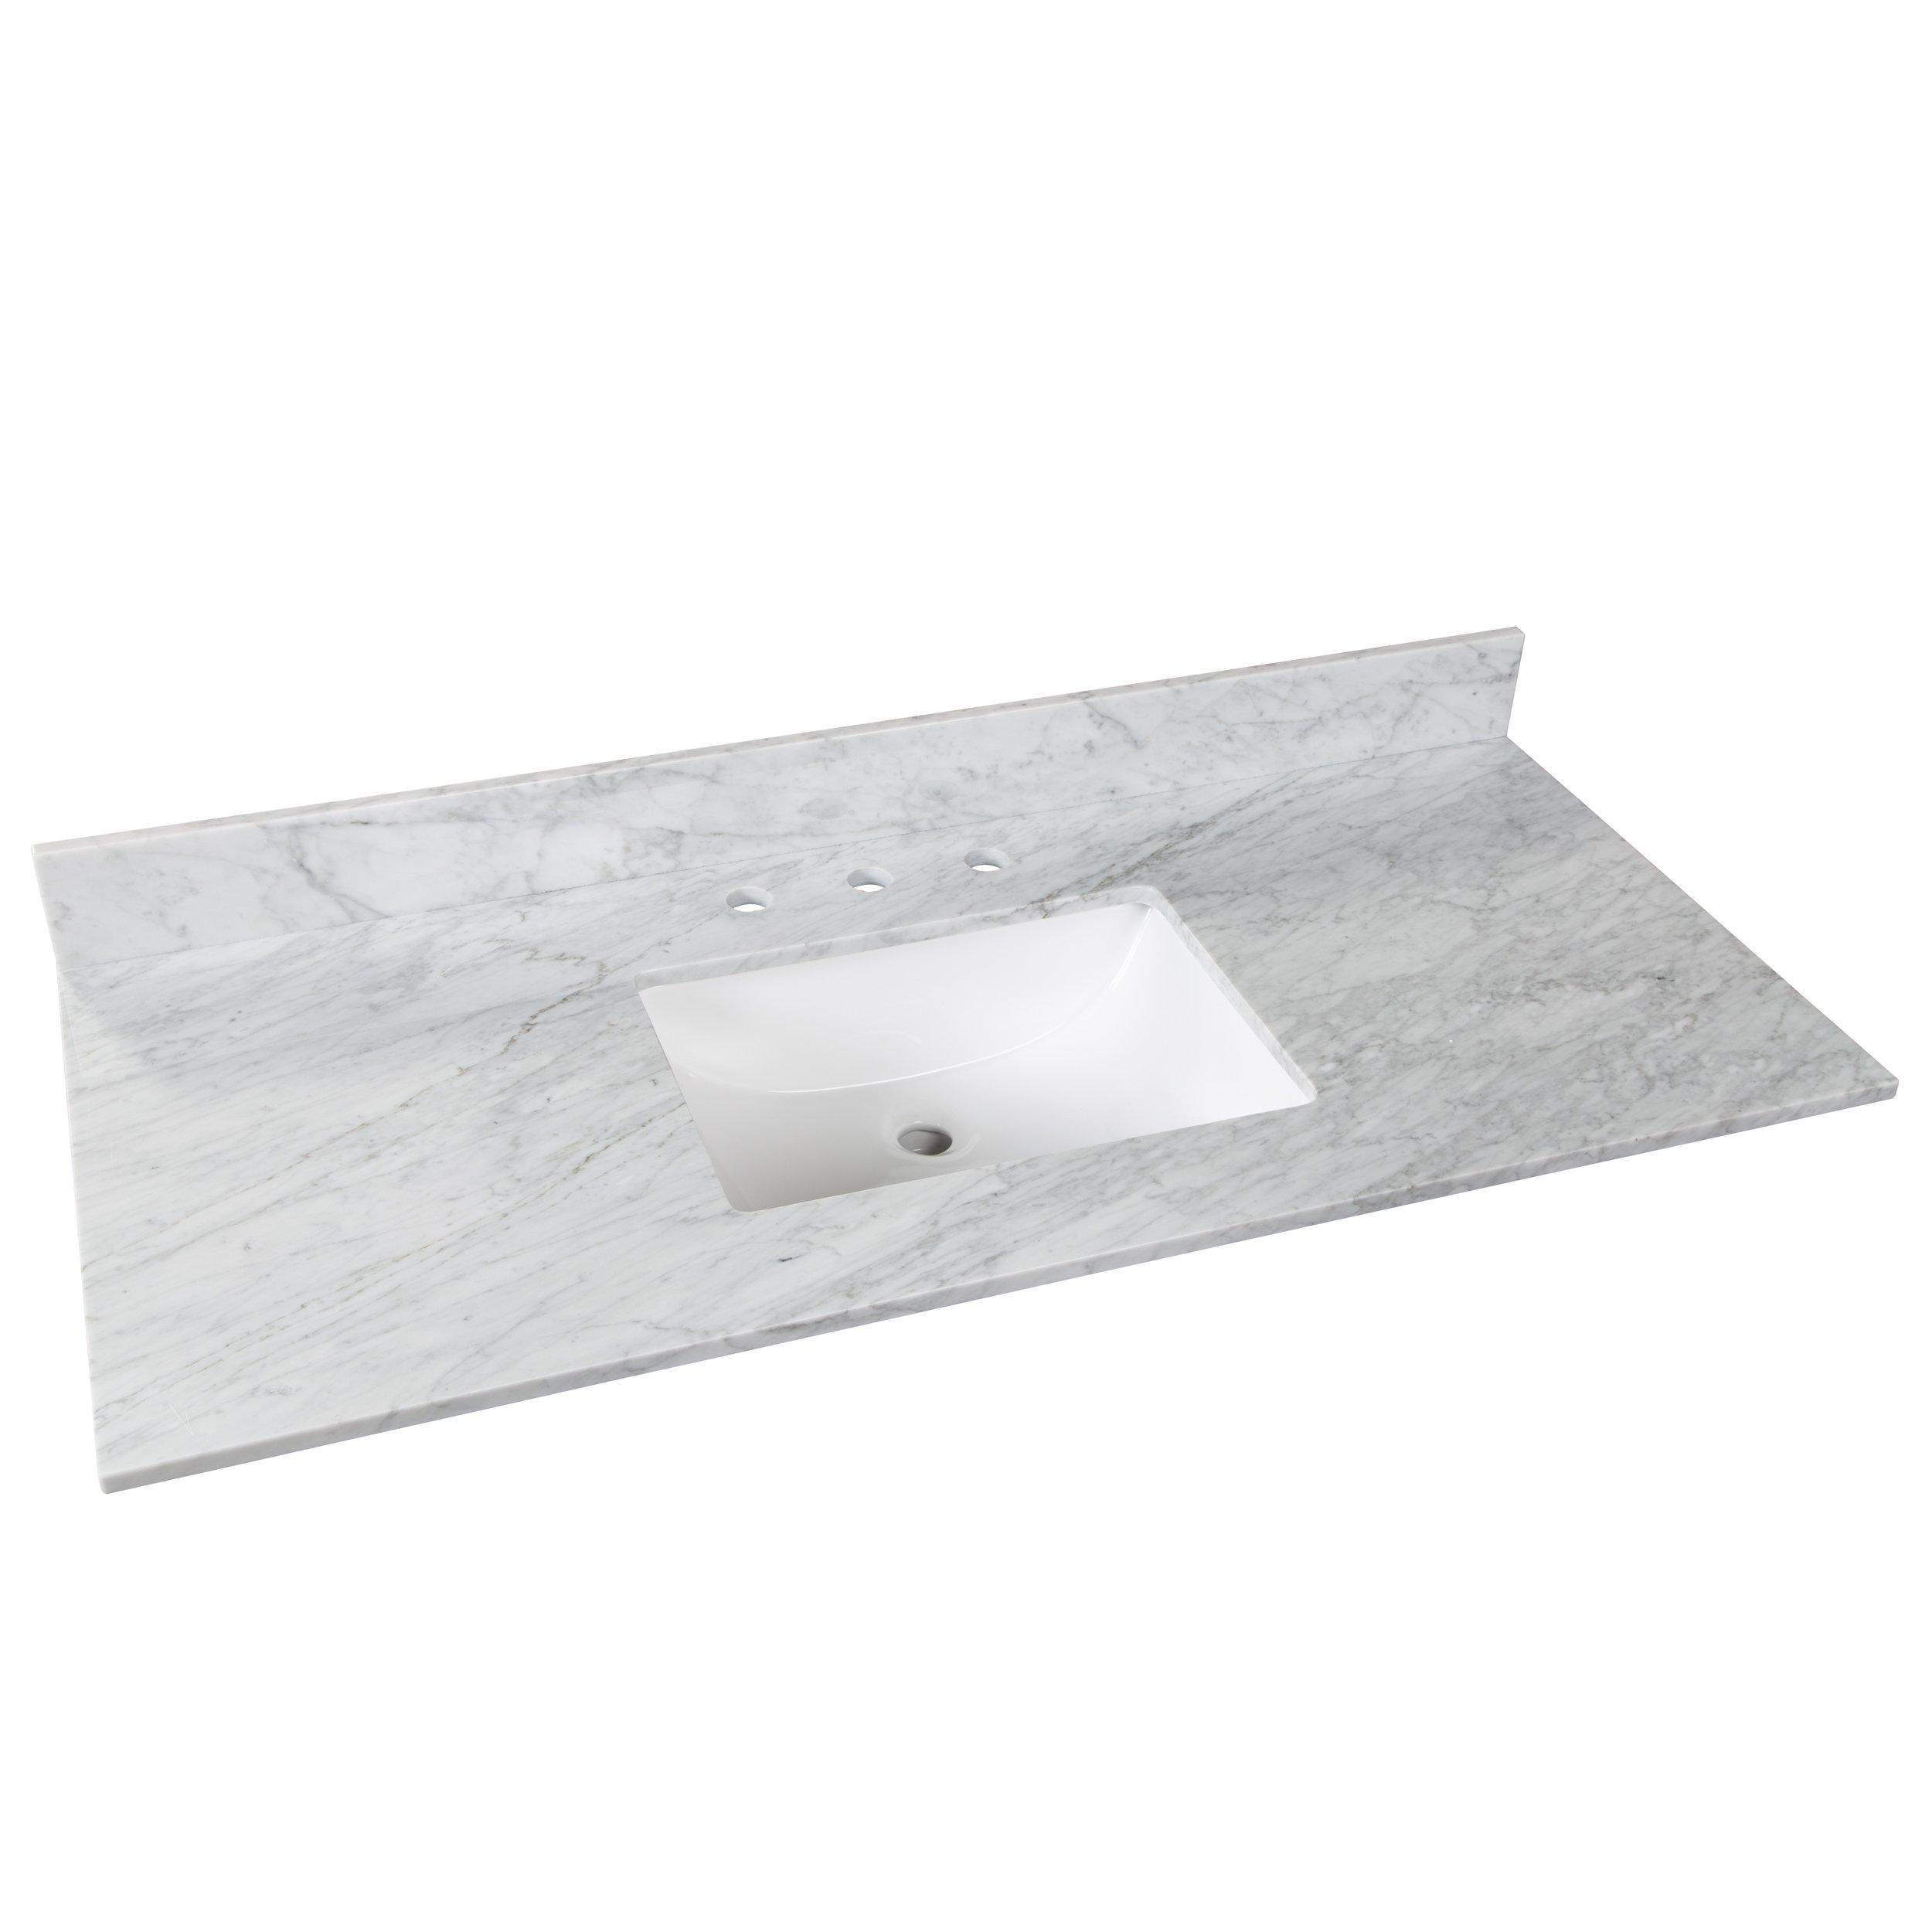 Bianco Carrara Marble 49 In Vanity Top 49in 100583954 Floor And Decor